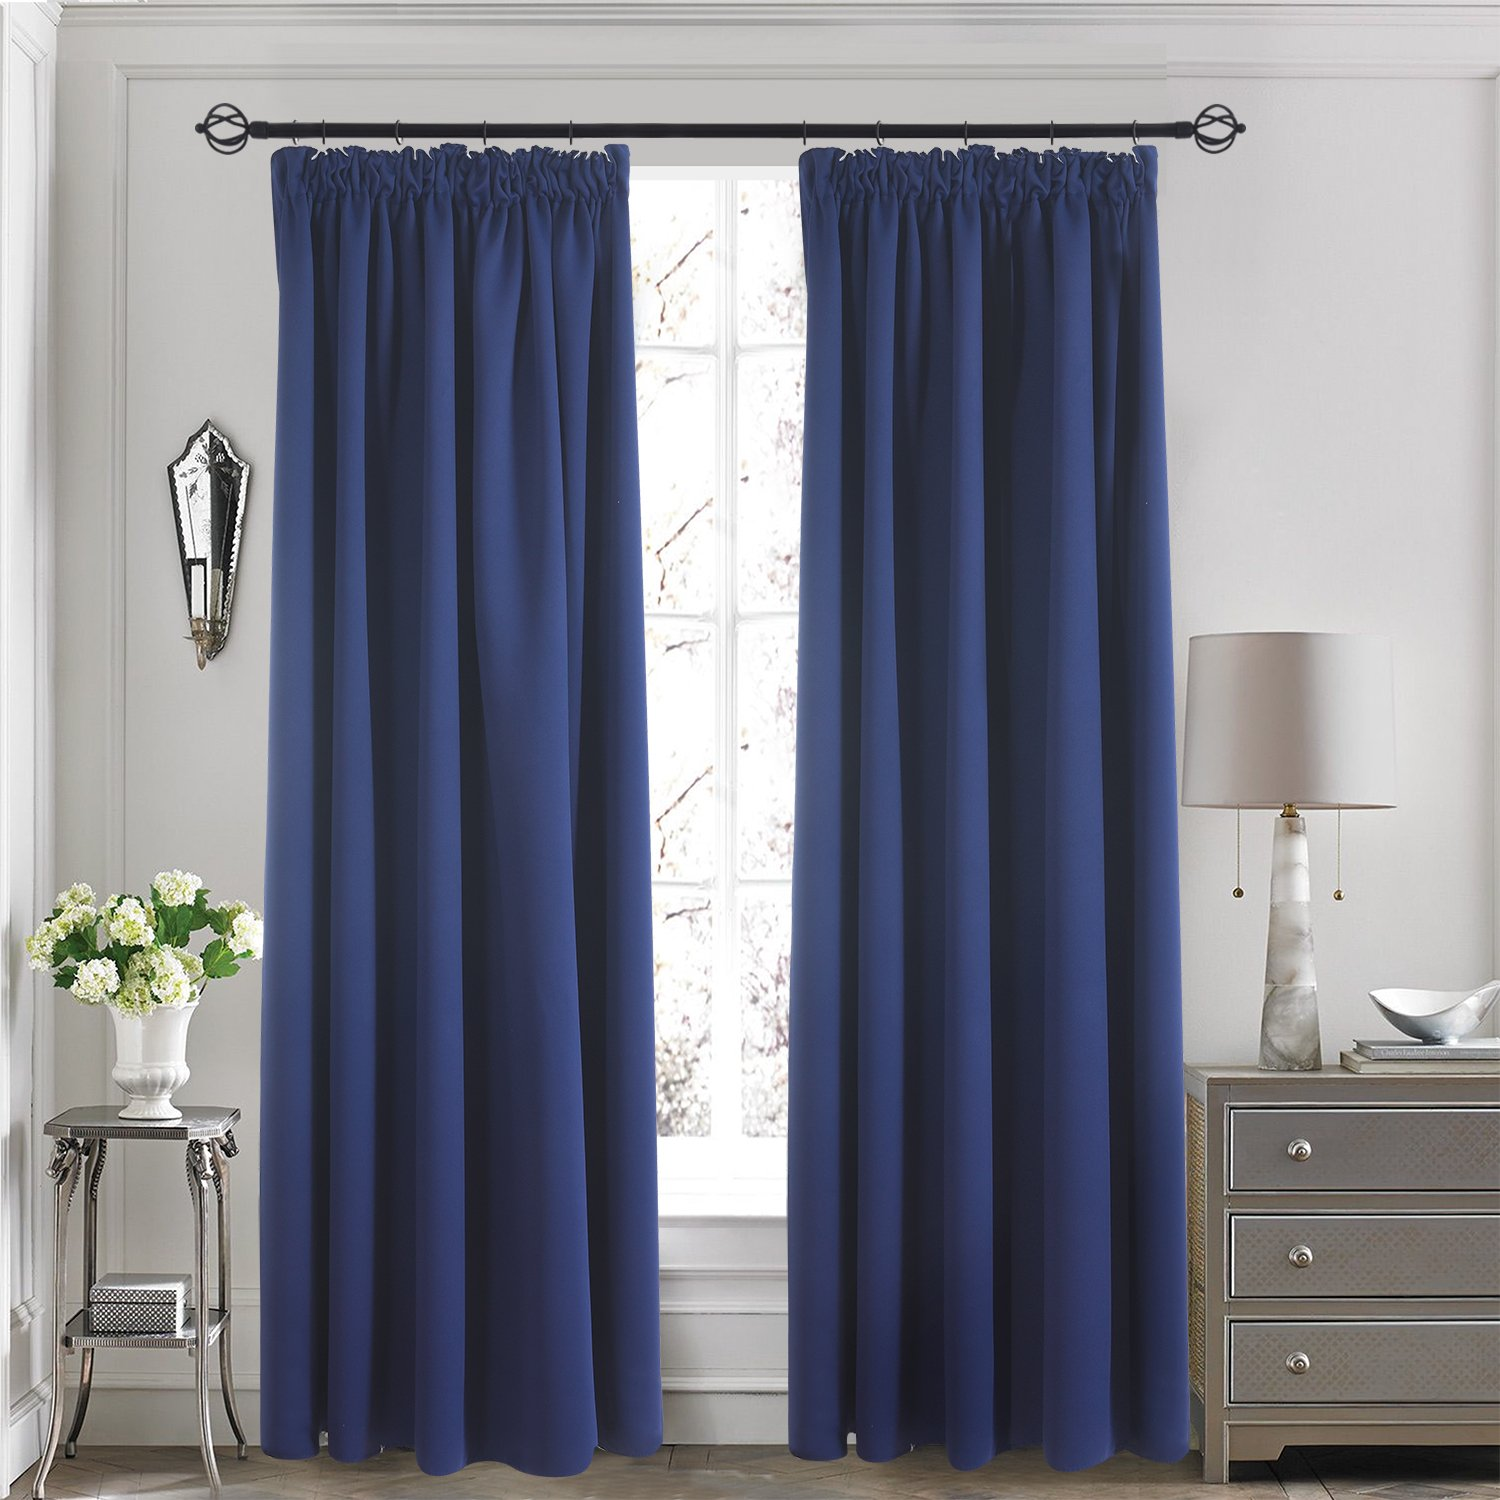 Thermal Insulated Pencil Pleat Curtains